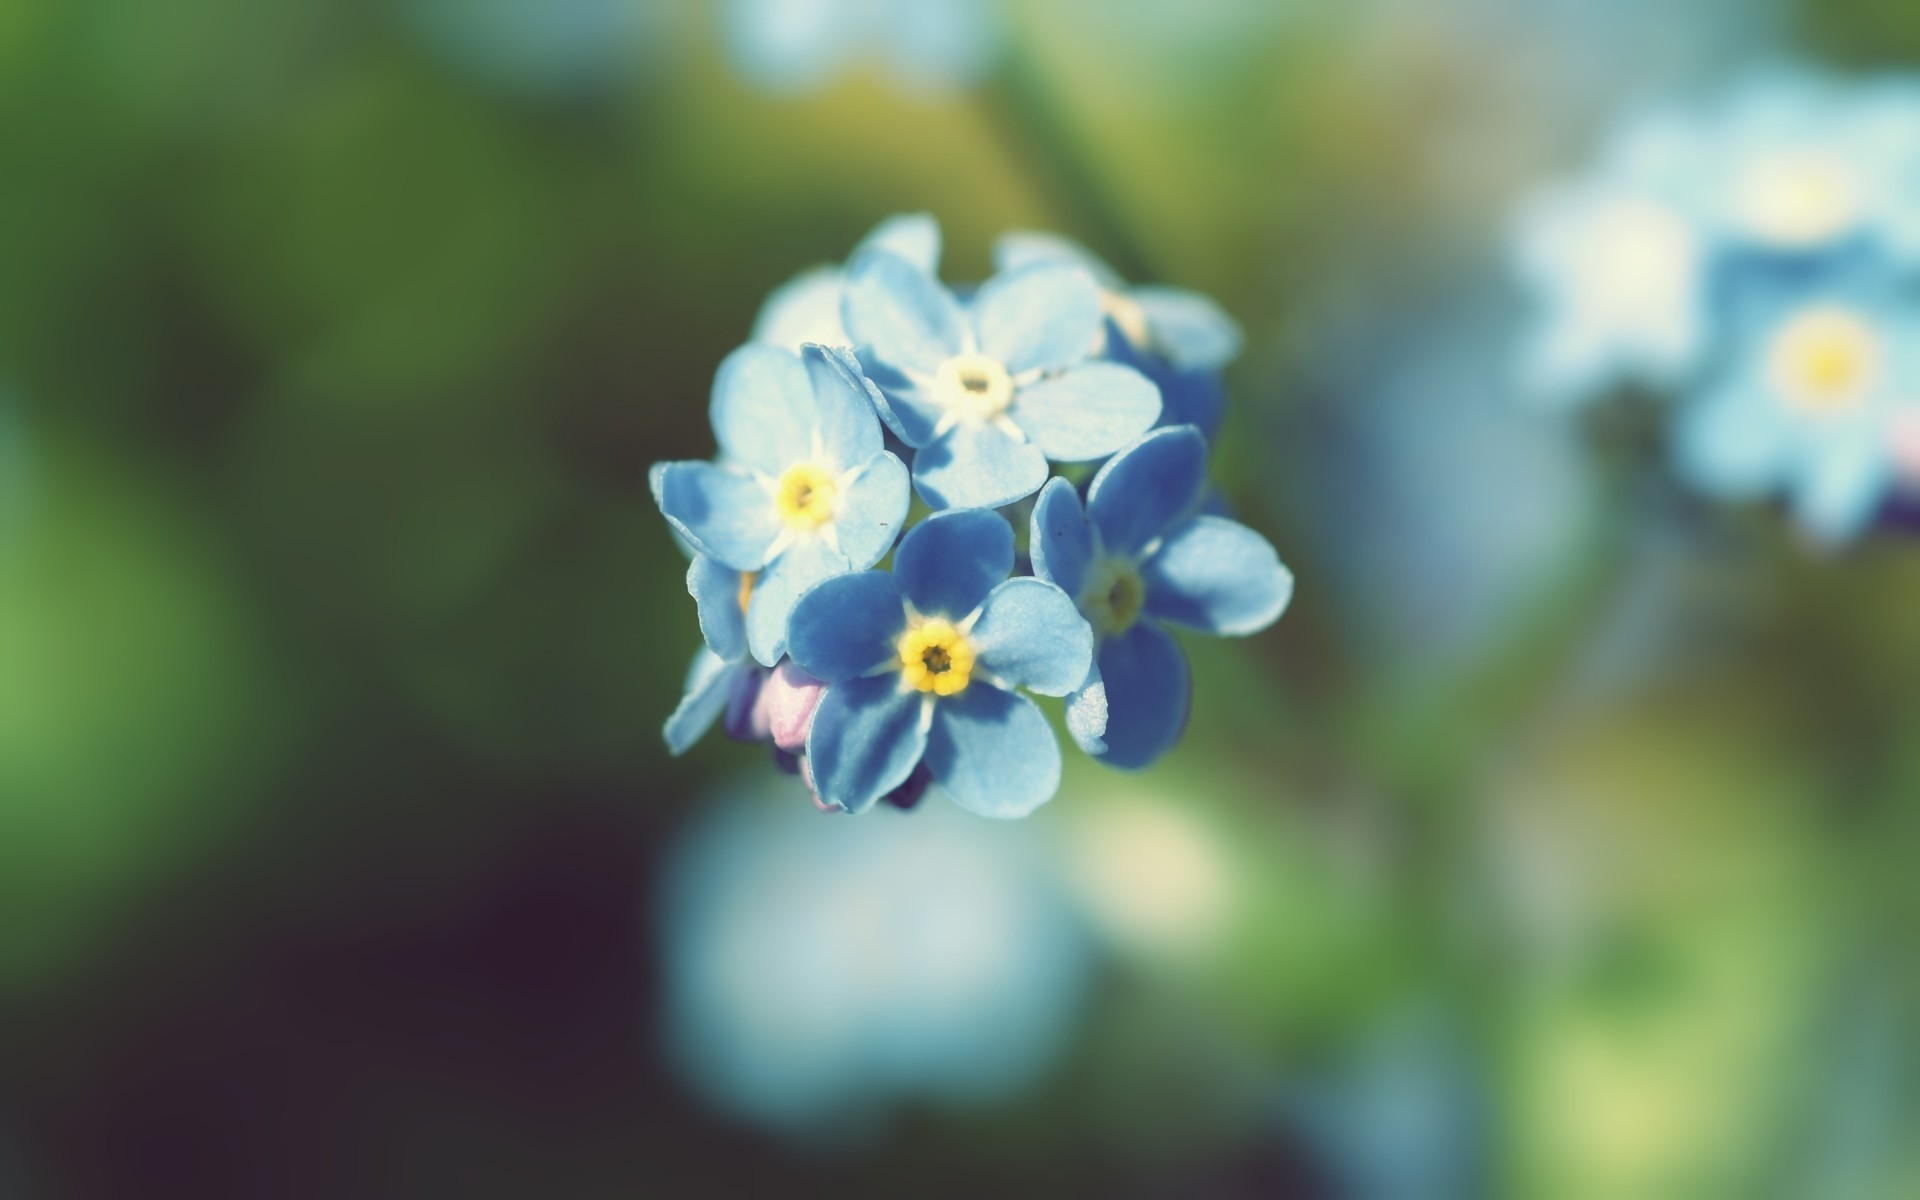 nature Flowers summer Forget-me-nots HD Wallpaper